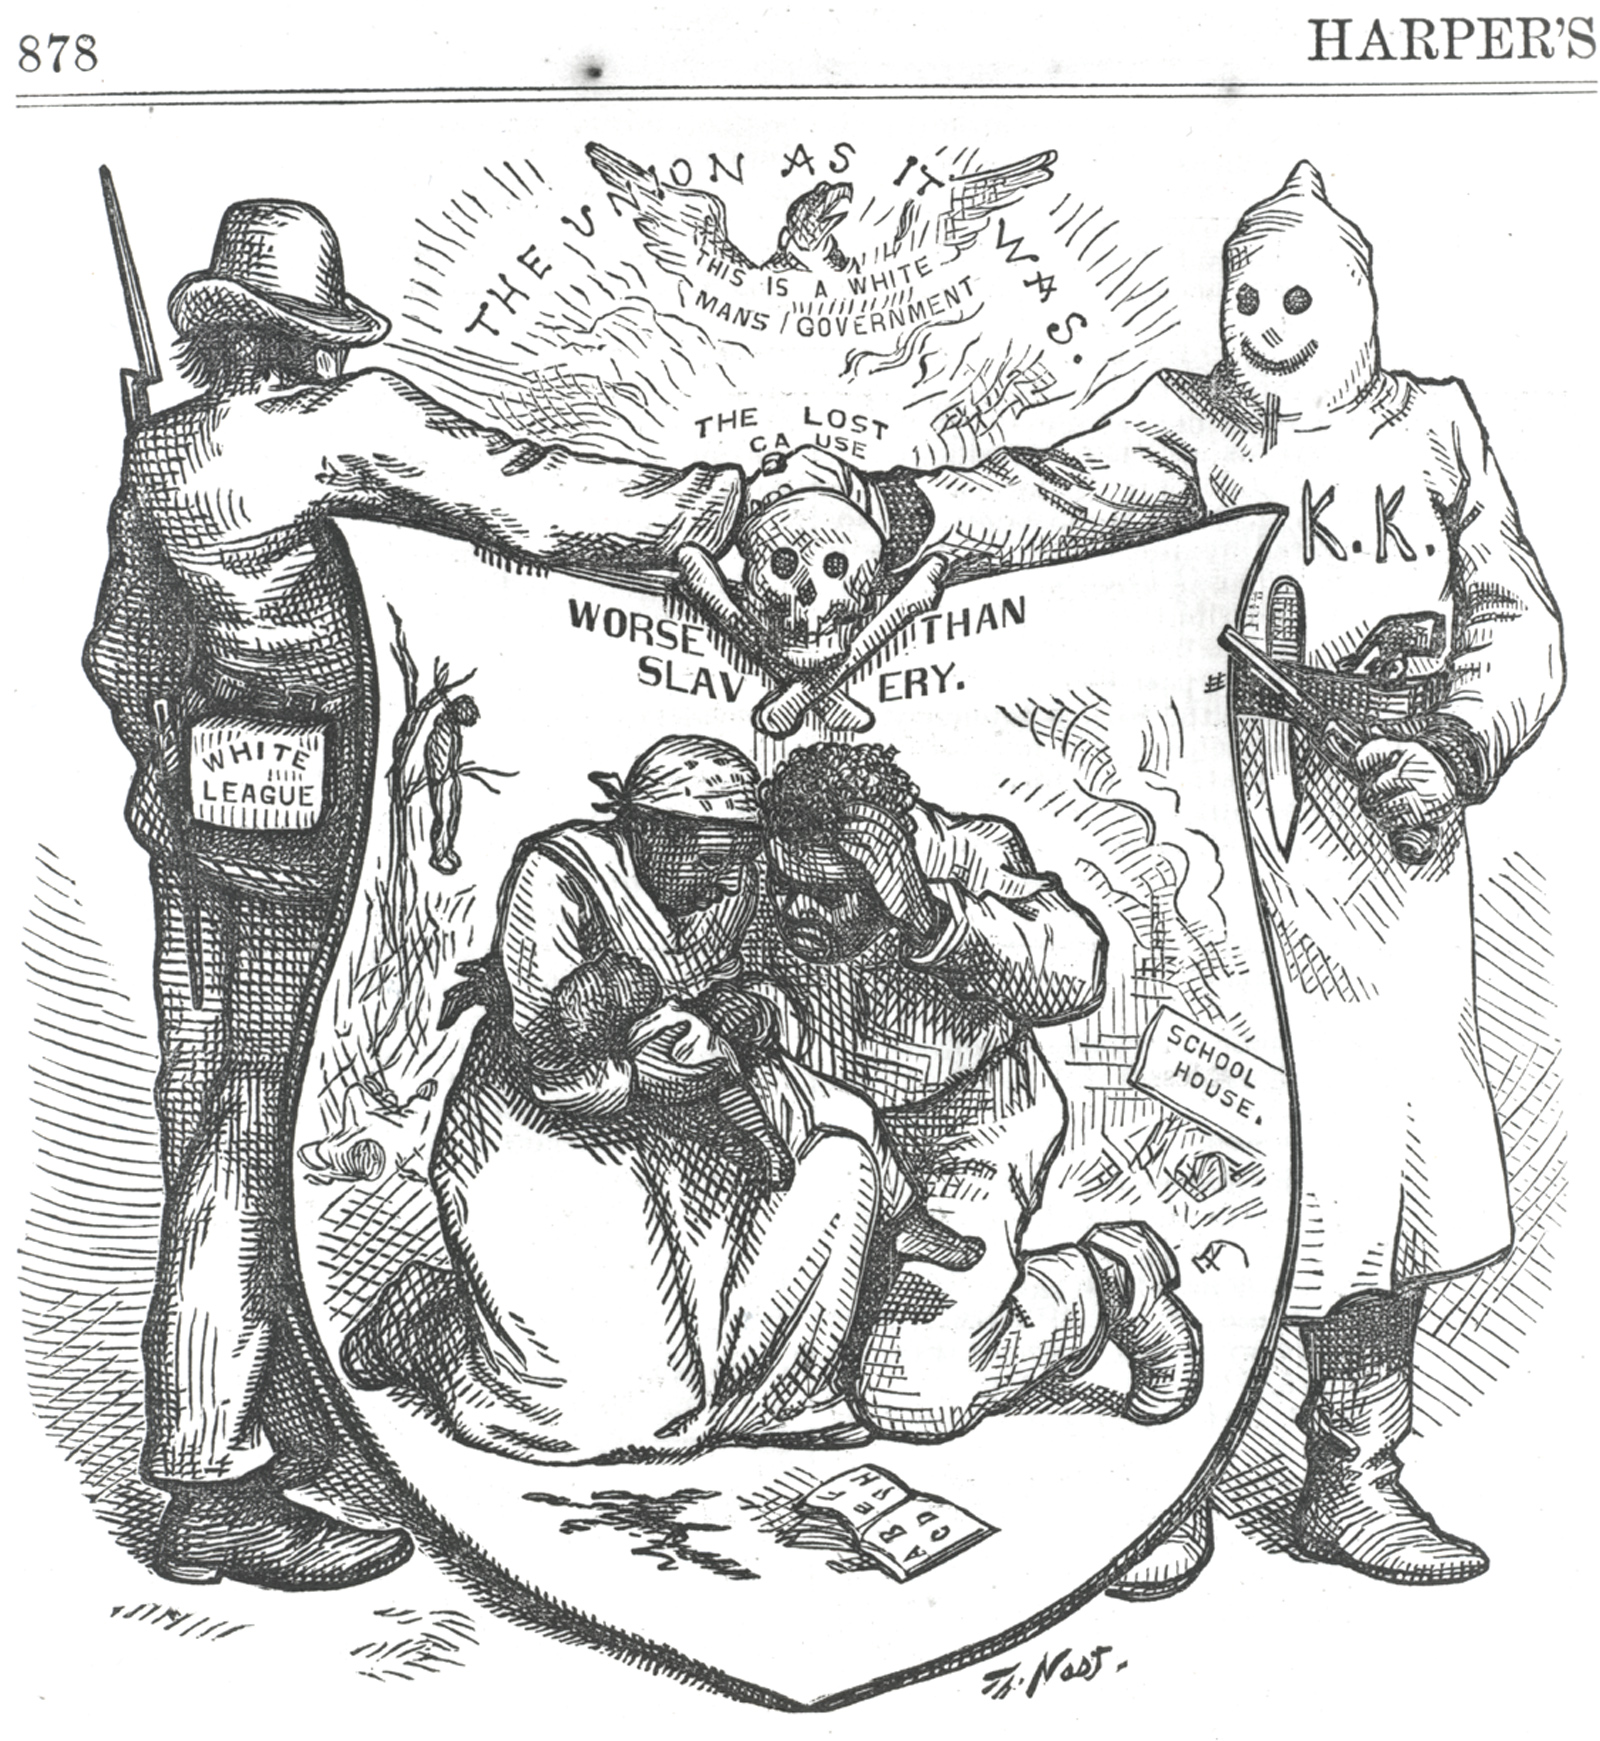 Thomas Nast's Political Cartoons | American Experience ...